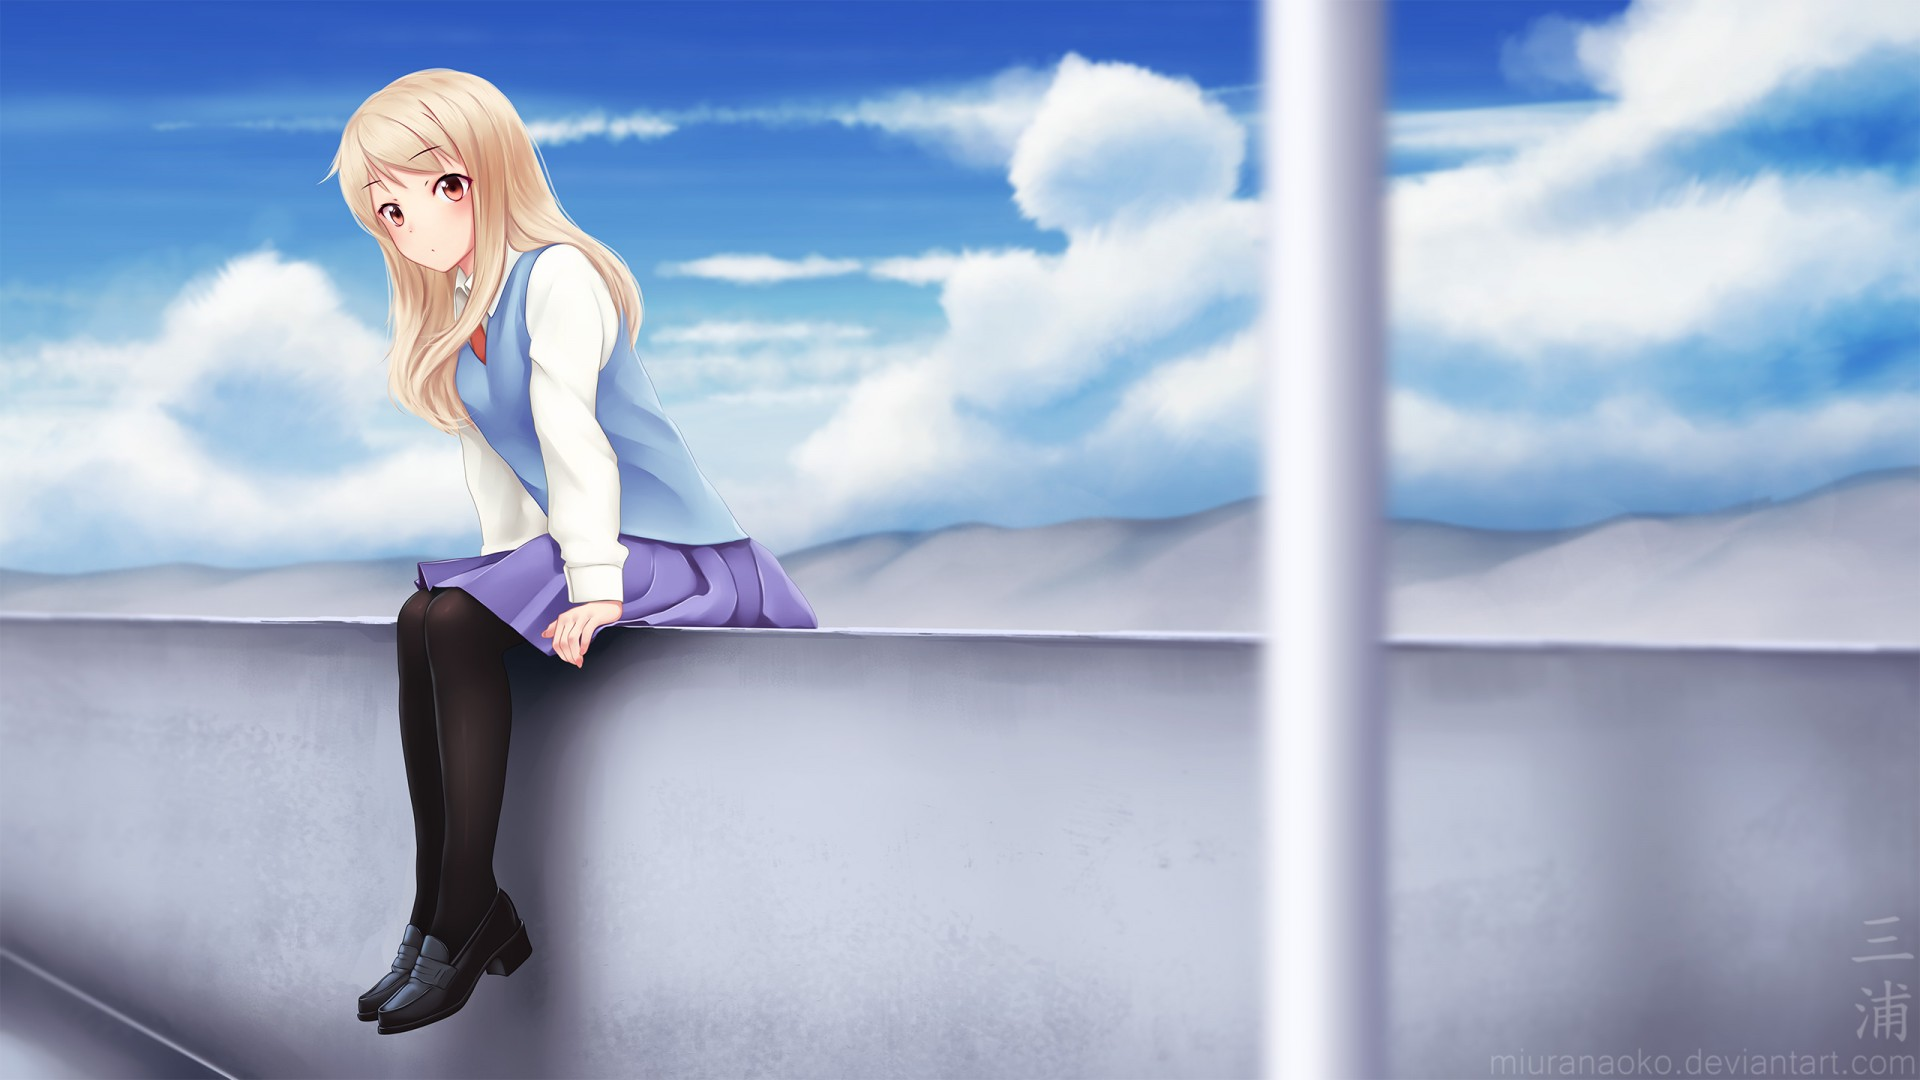 Cute Lonely Girl Hd Wallpaper Mashiro Shiina Anime Wallpapers Hd Wallpapers Id 17853